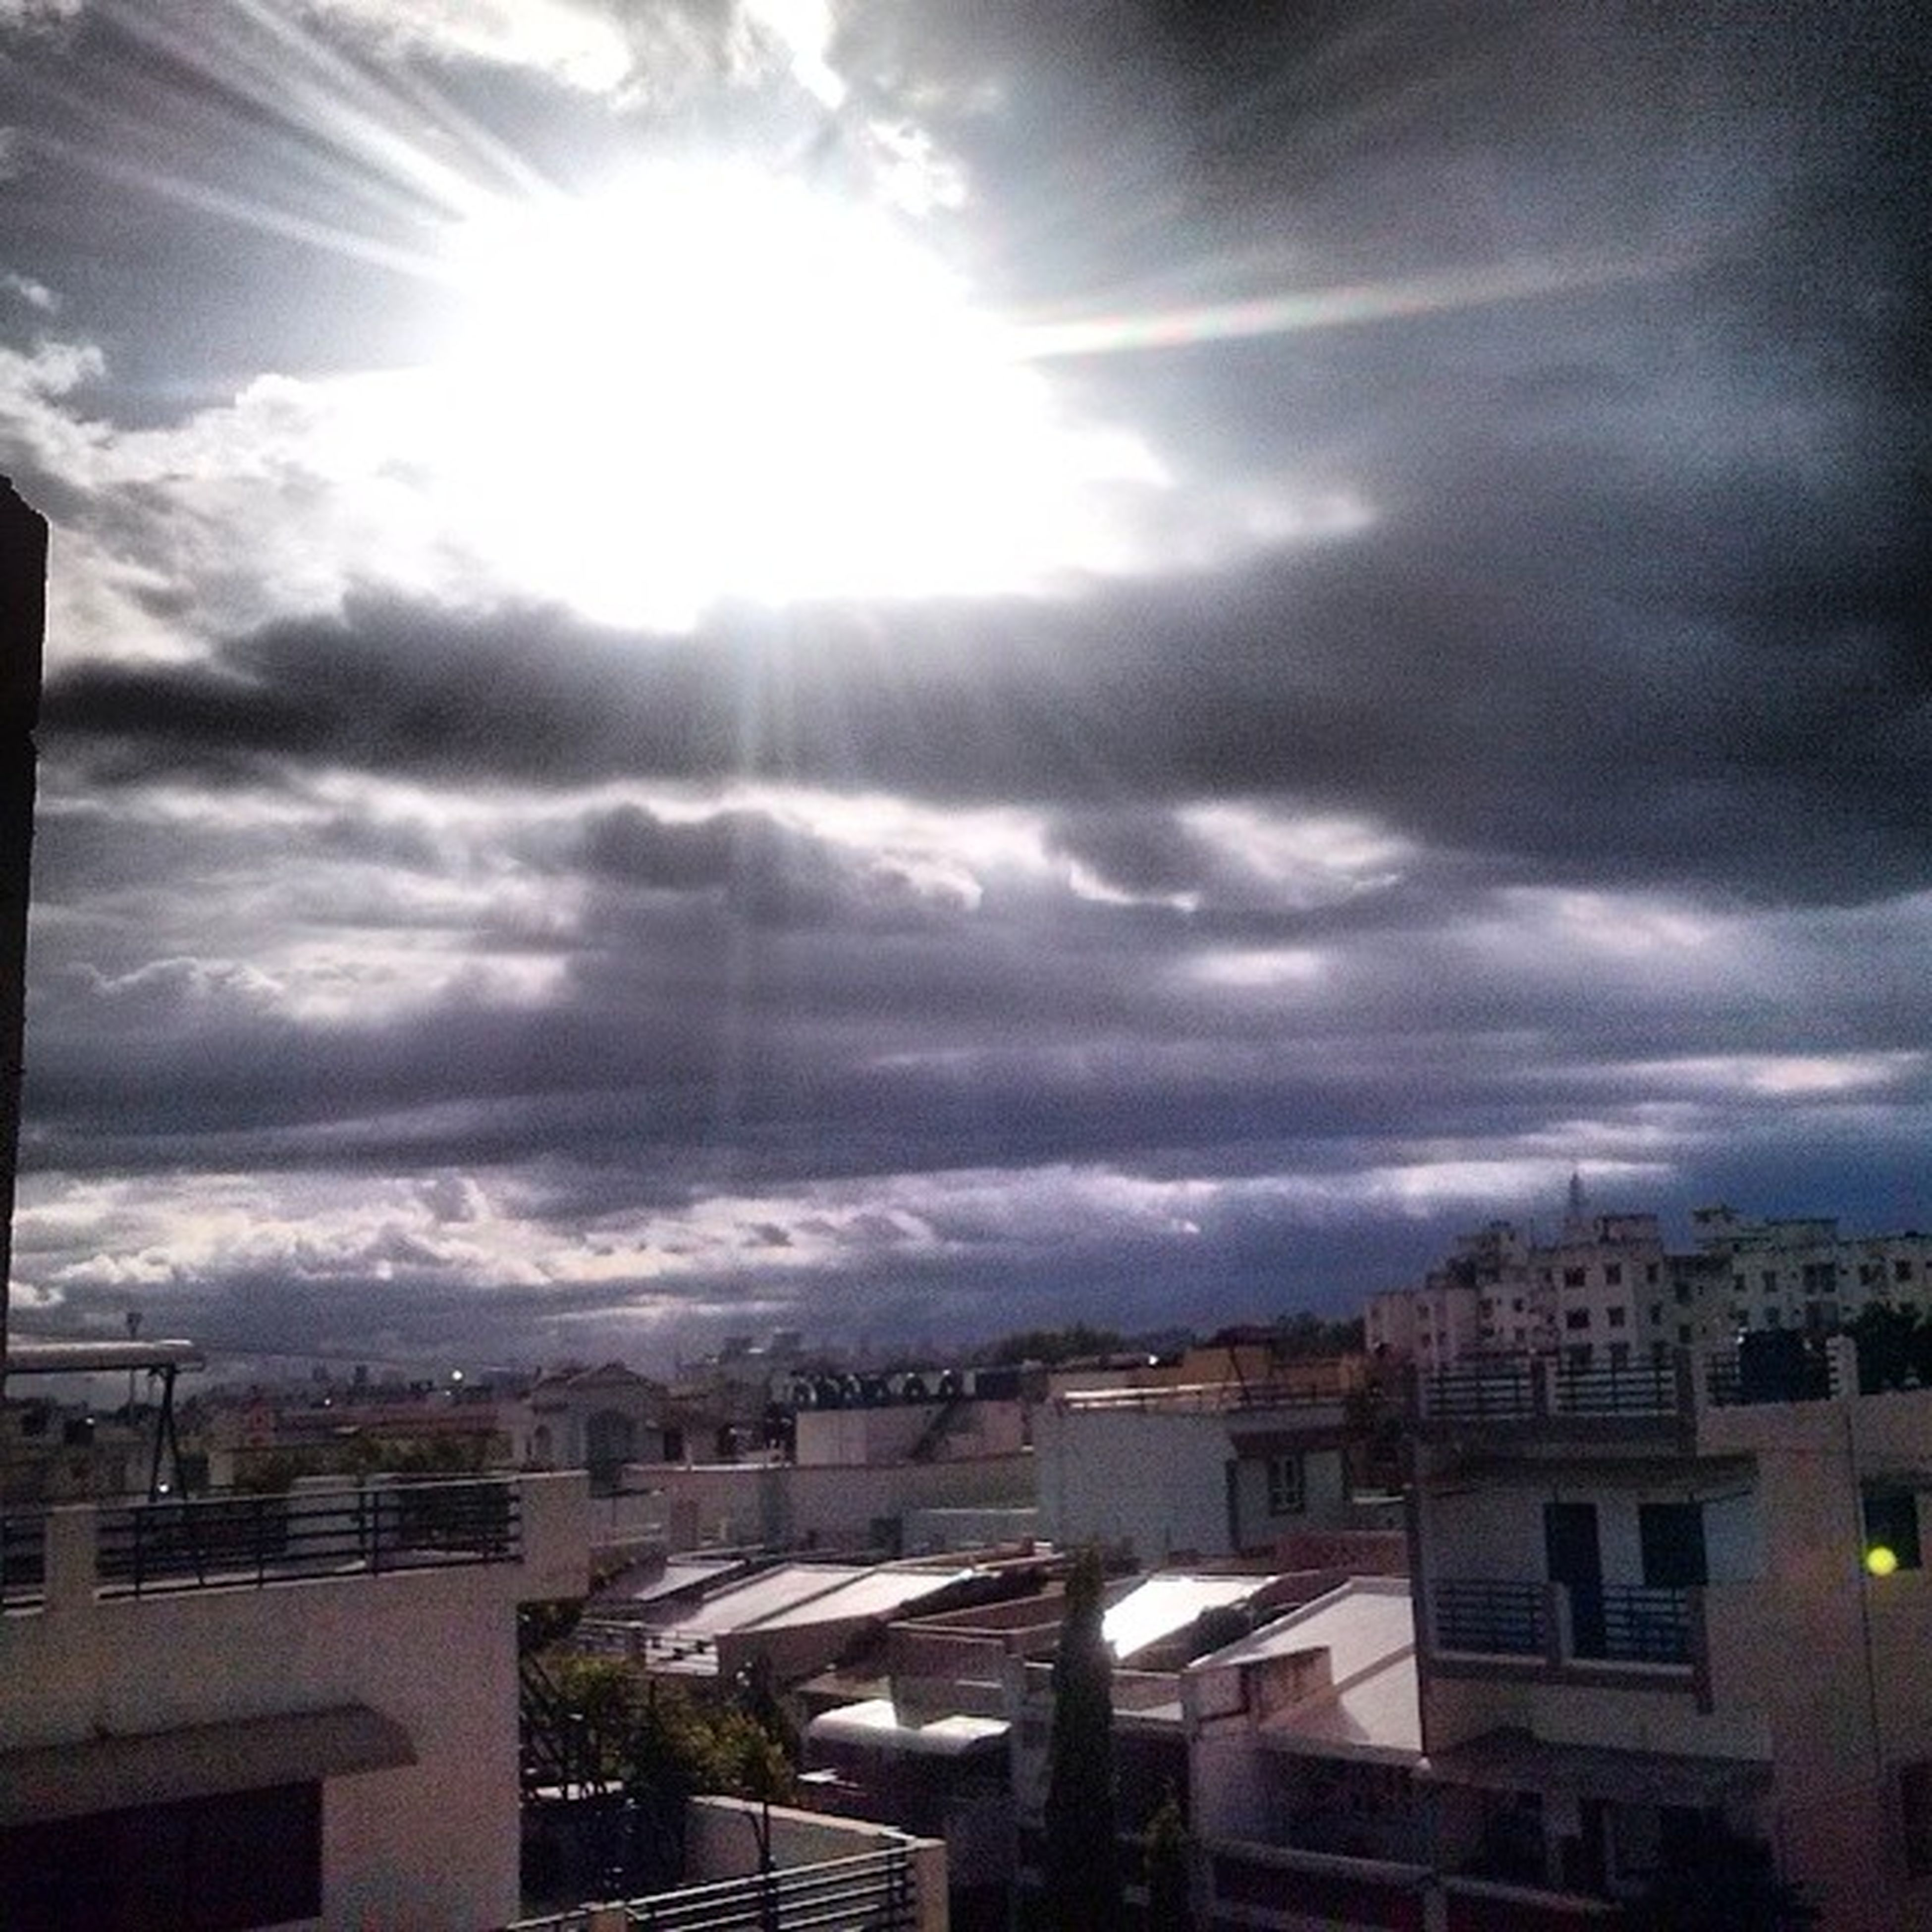 building exterior, architecture, built structure, sun, city, sky, sunbeam, cityscape, cloud - sky, sunlight, residential building, residential structure, residential district, house, lens flare, high angle view, crowded, cloud, cloudy, outdoors